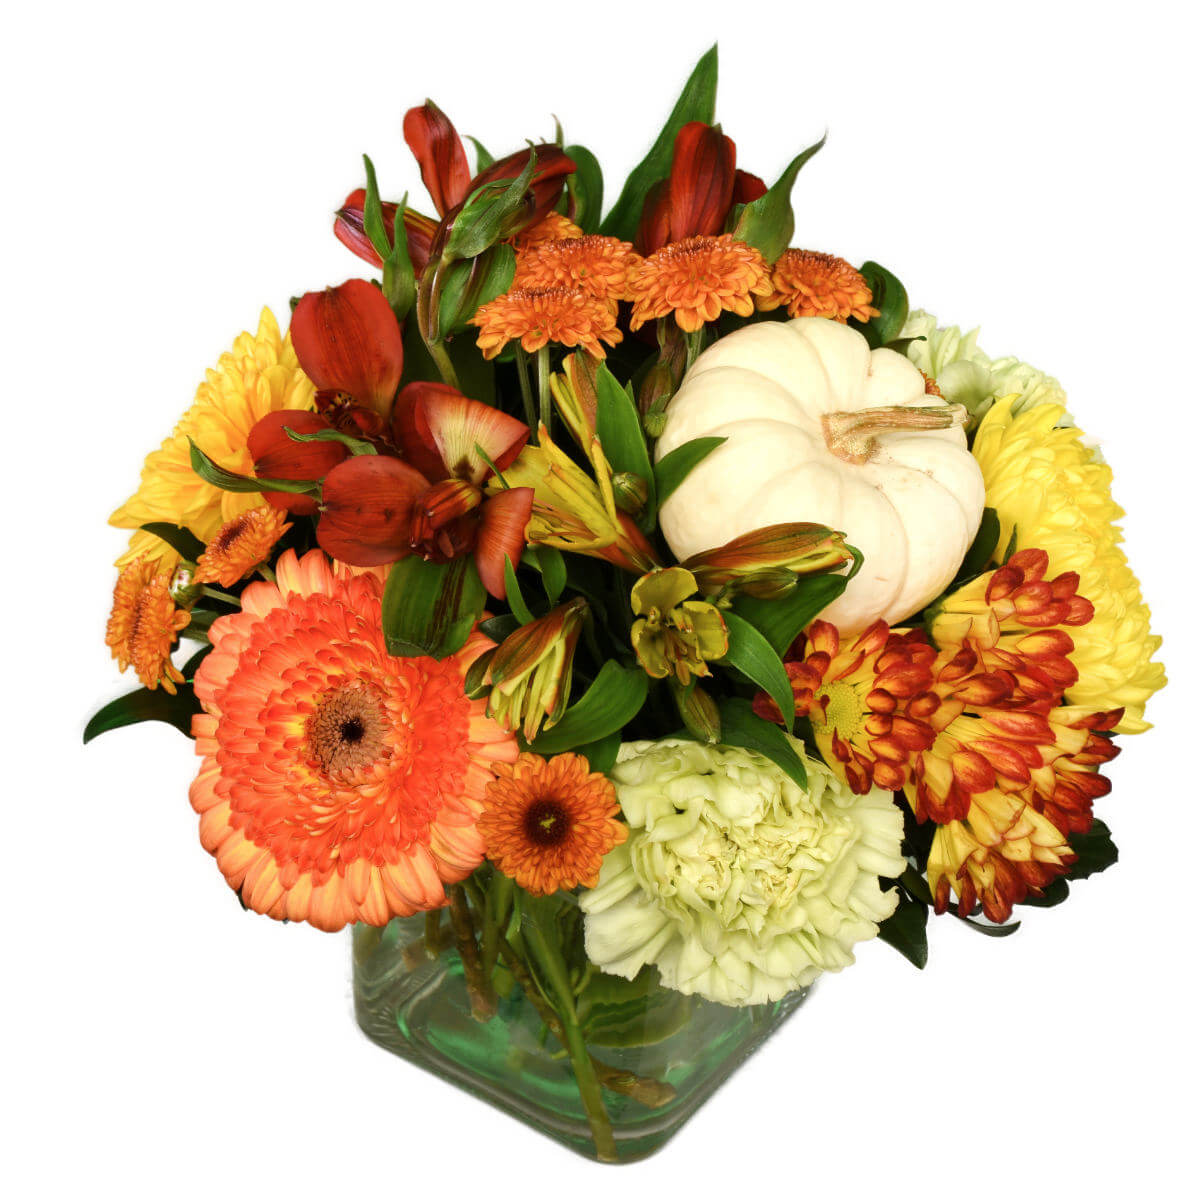 Vancouver Thanksgiving Flower Centerpiece   Burnaby Flower Delivery   Adele Rae Florist